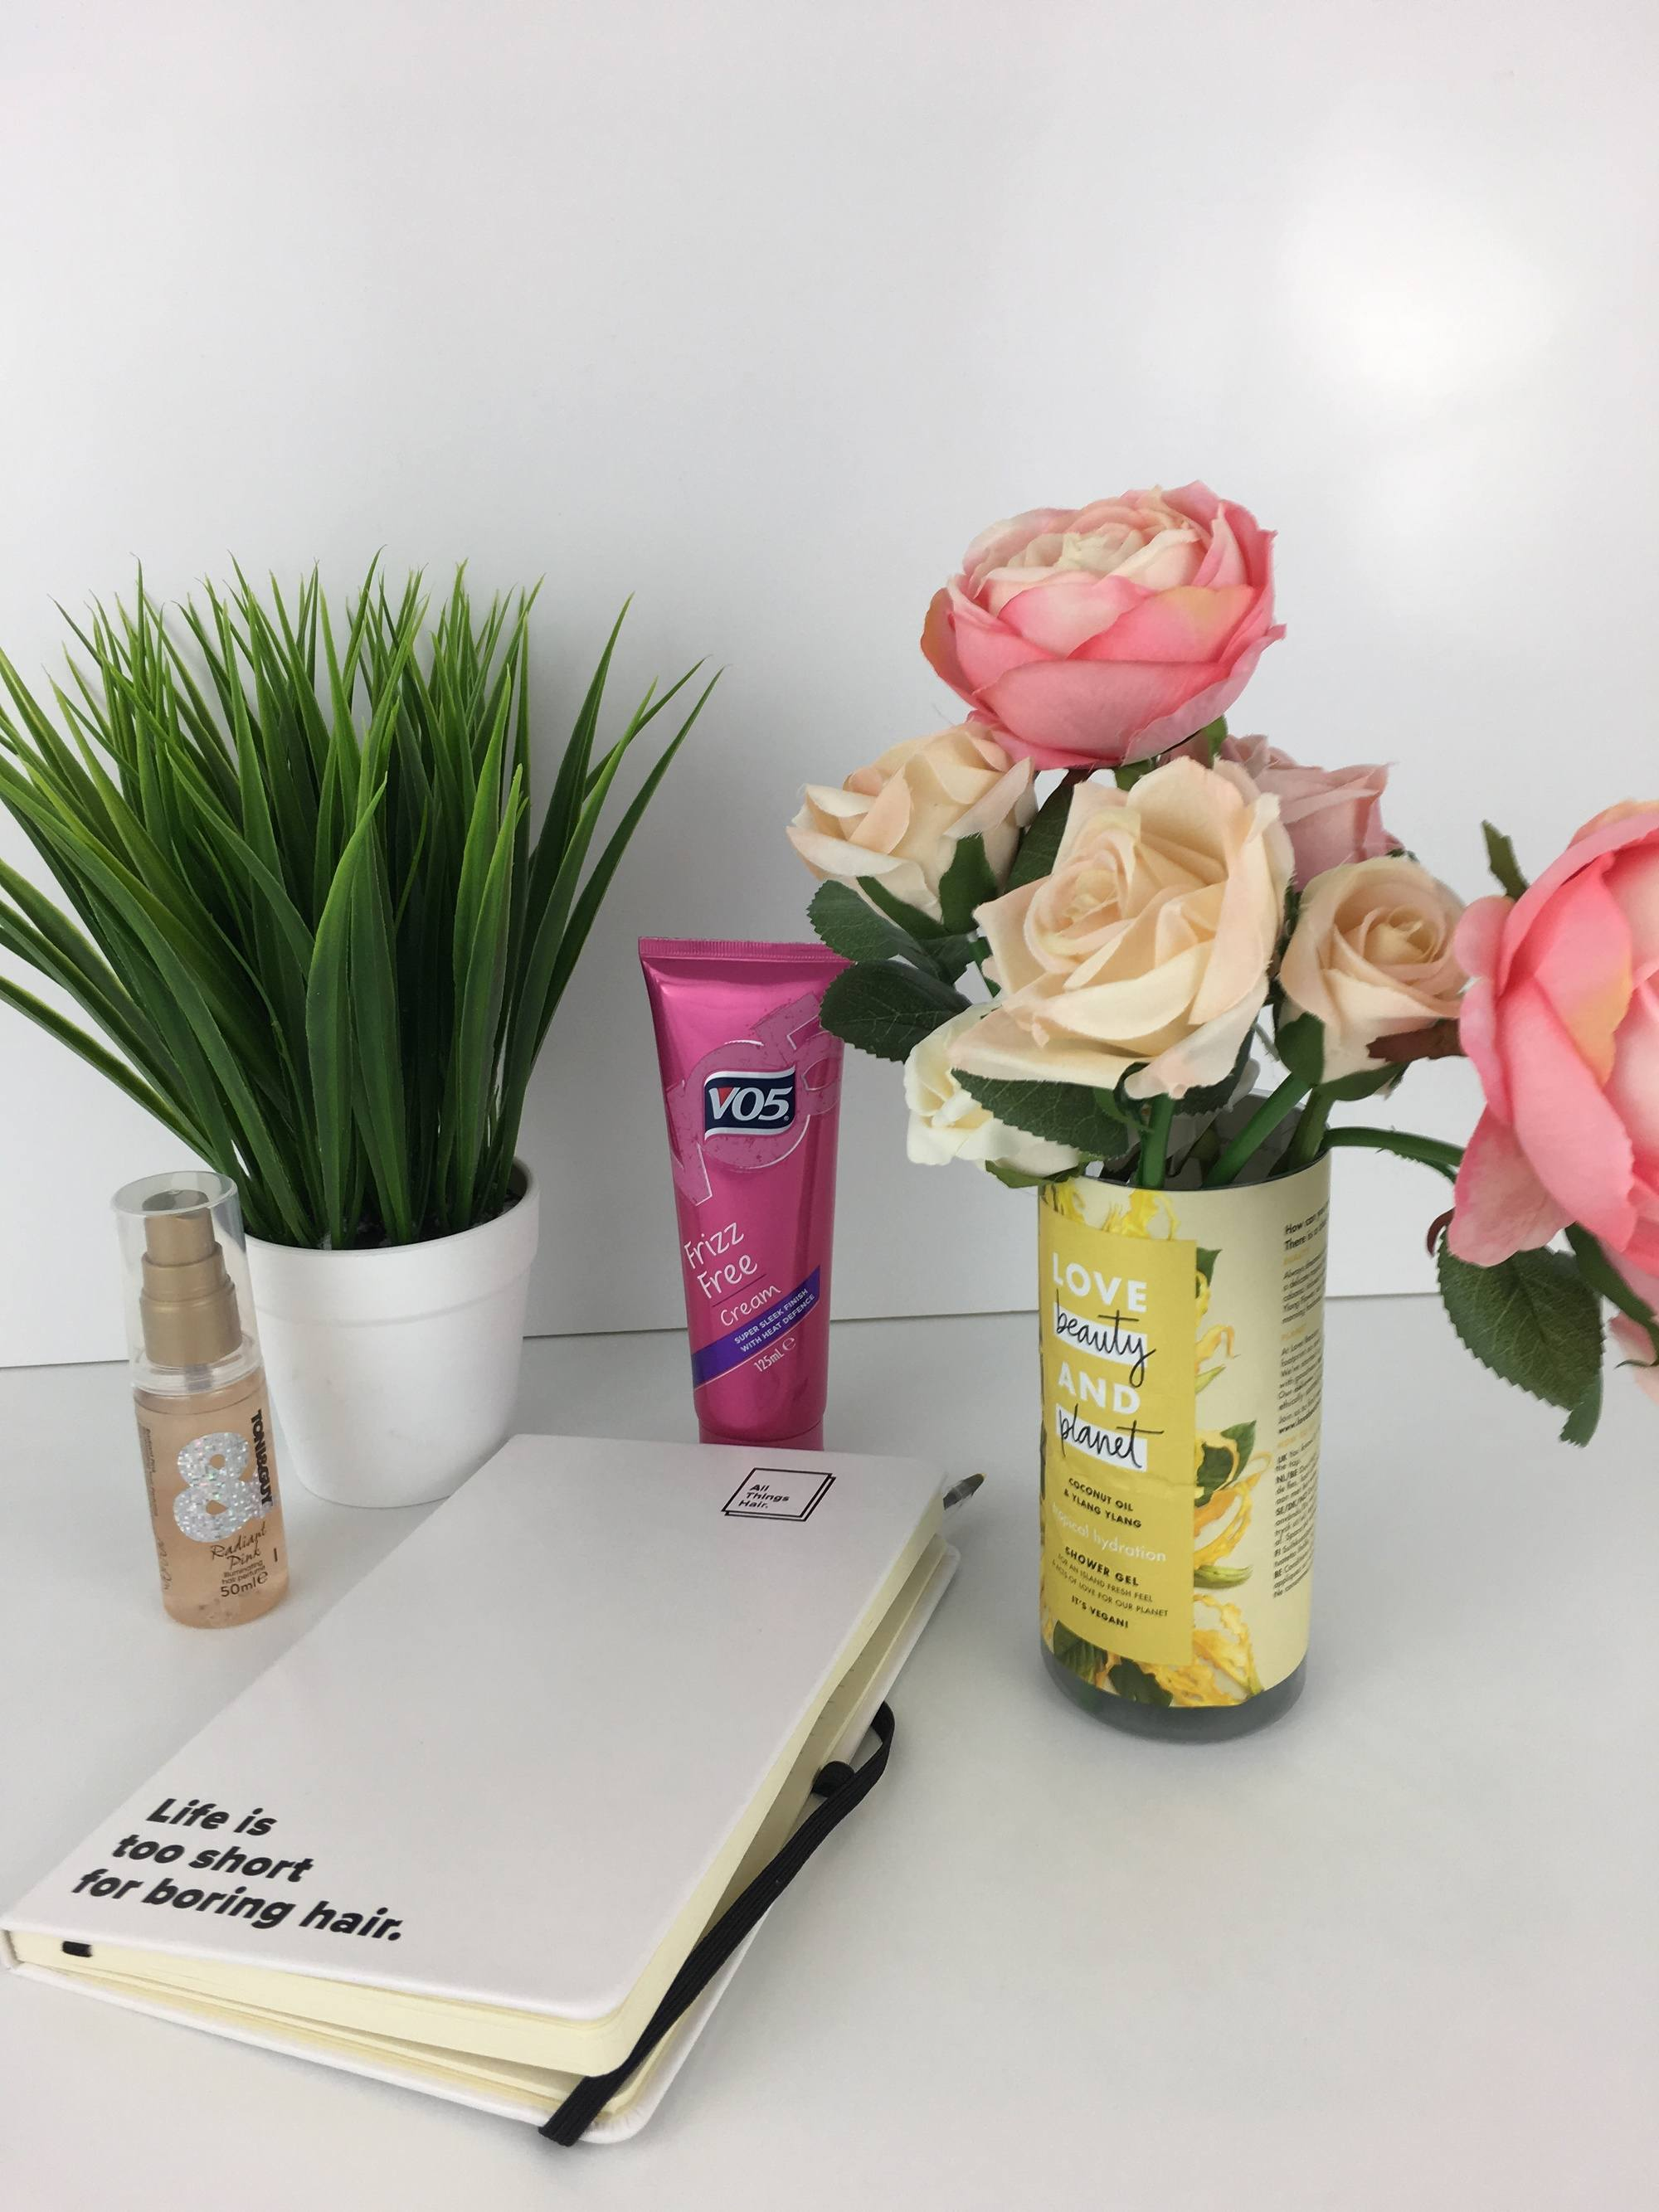 World Earth Day: Picture of plastic bottle with flowers in it, with a notebook and plant on the desk